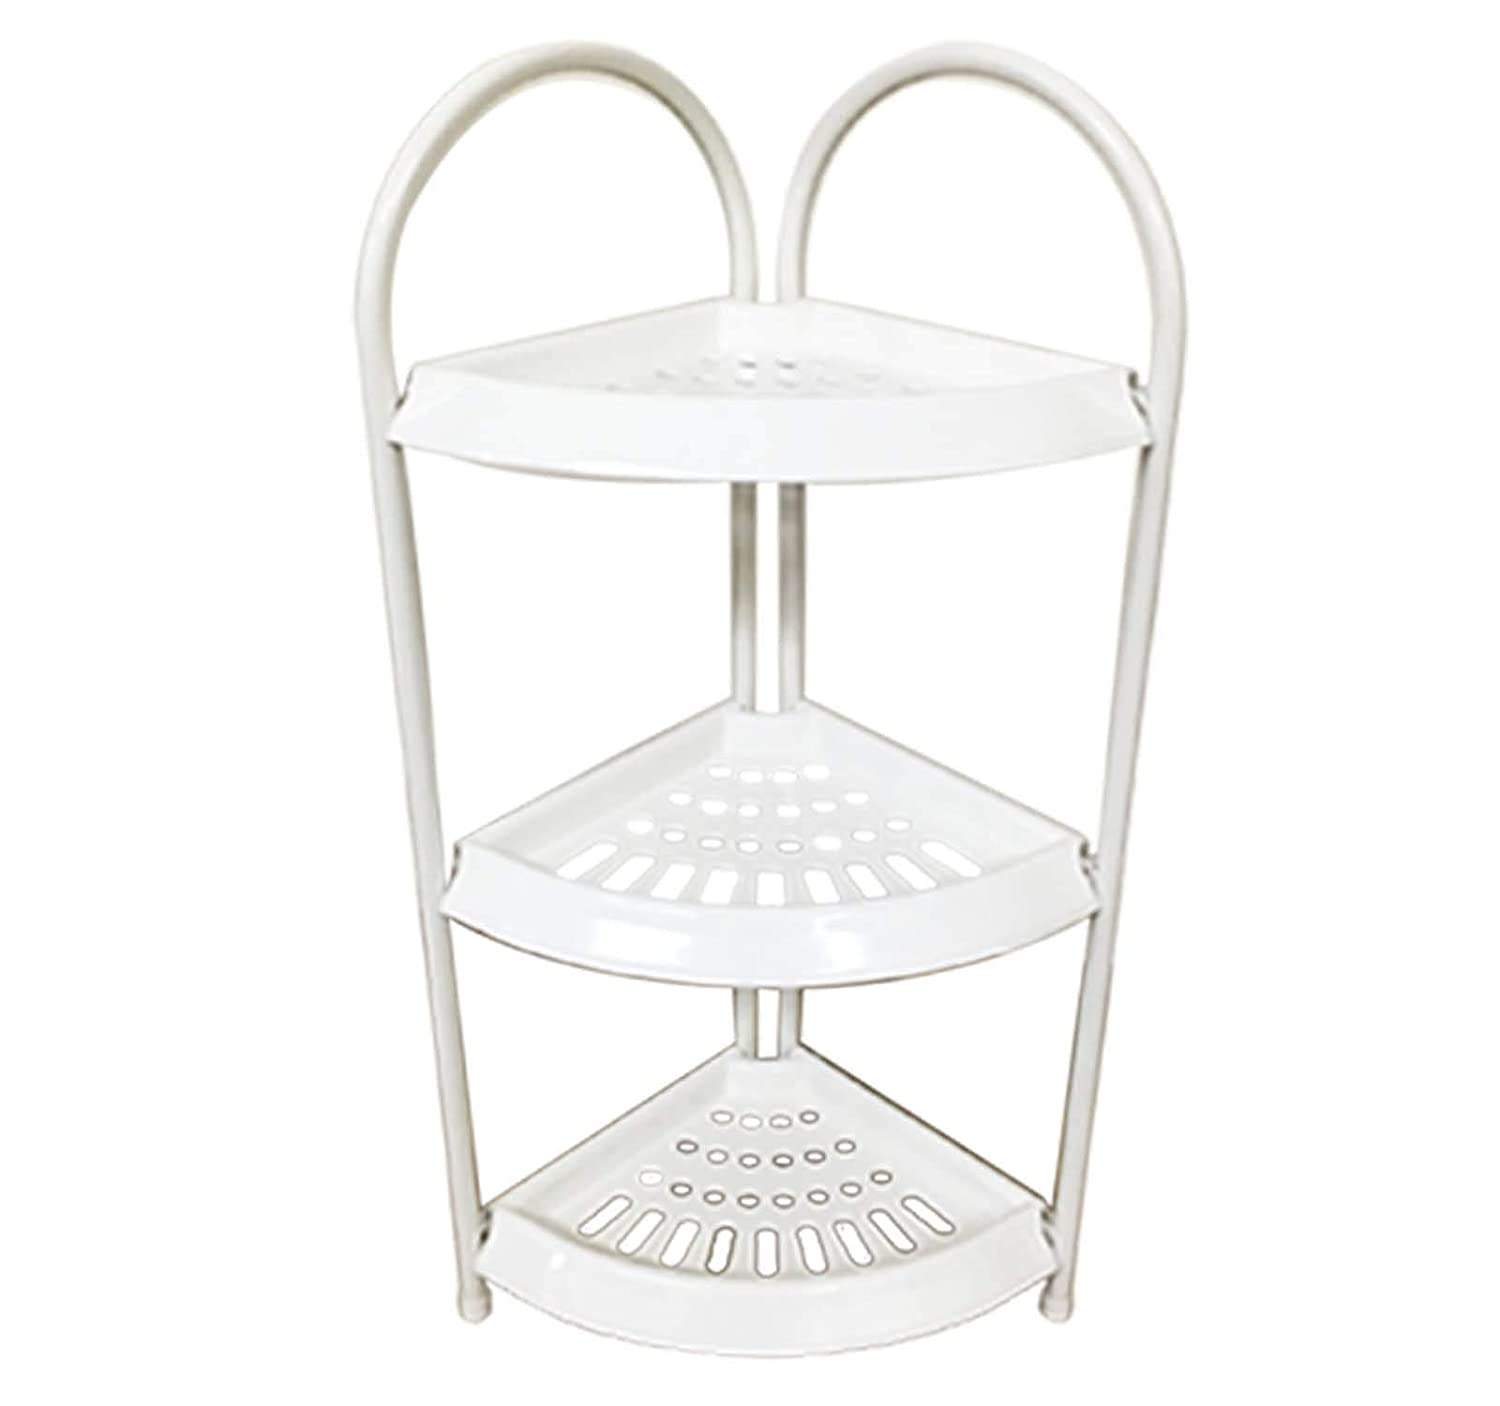 3 TIER Shower Caddy Corner Rust Proof White Shelf Kitchen Bathroom Storage Unit - Heavy Duty, Easy Fitting (3 Tier) Bathroom Item